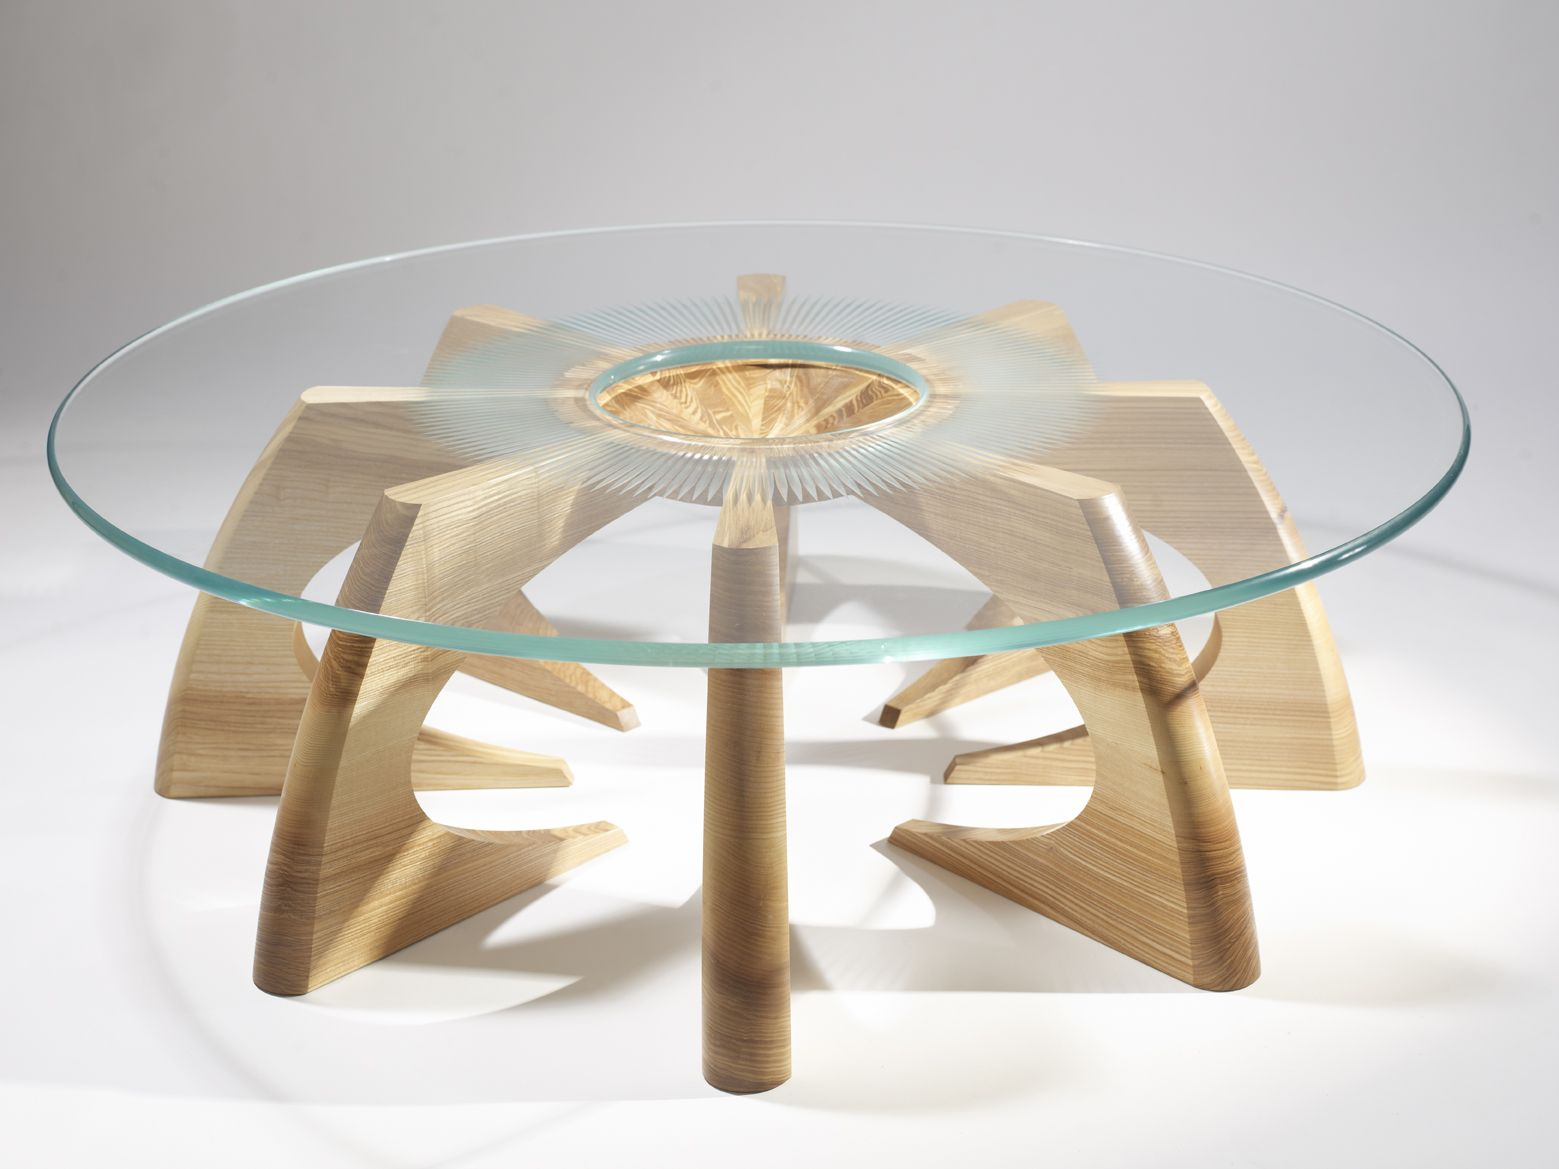 Wood Table Designs Free Wood Furniture Plans Cnc Cutting Milling Pinterest Wood Table